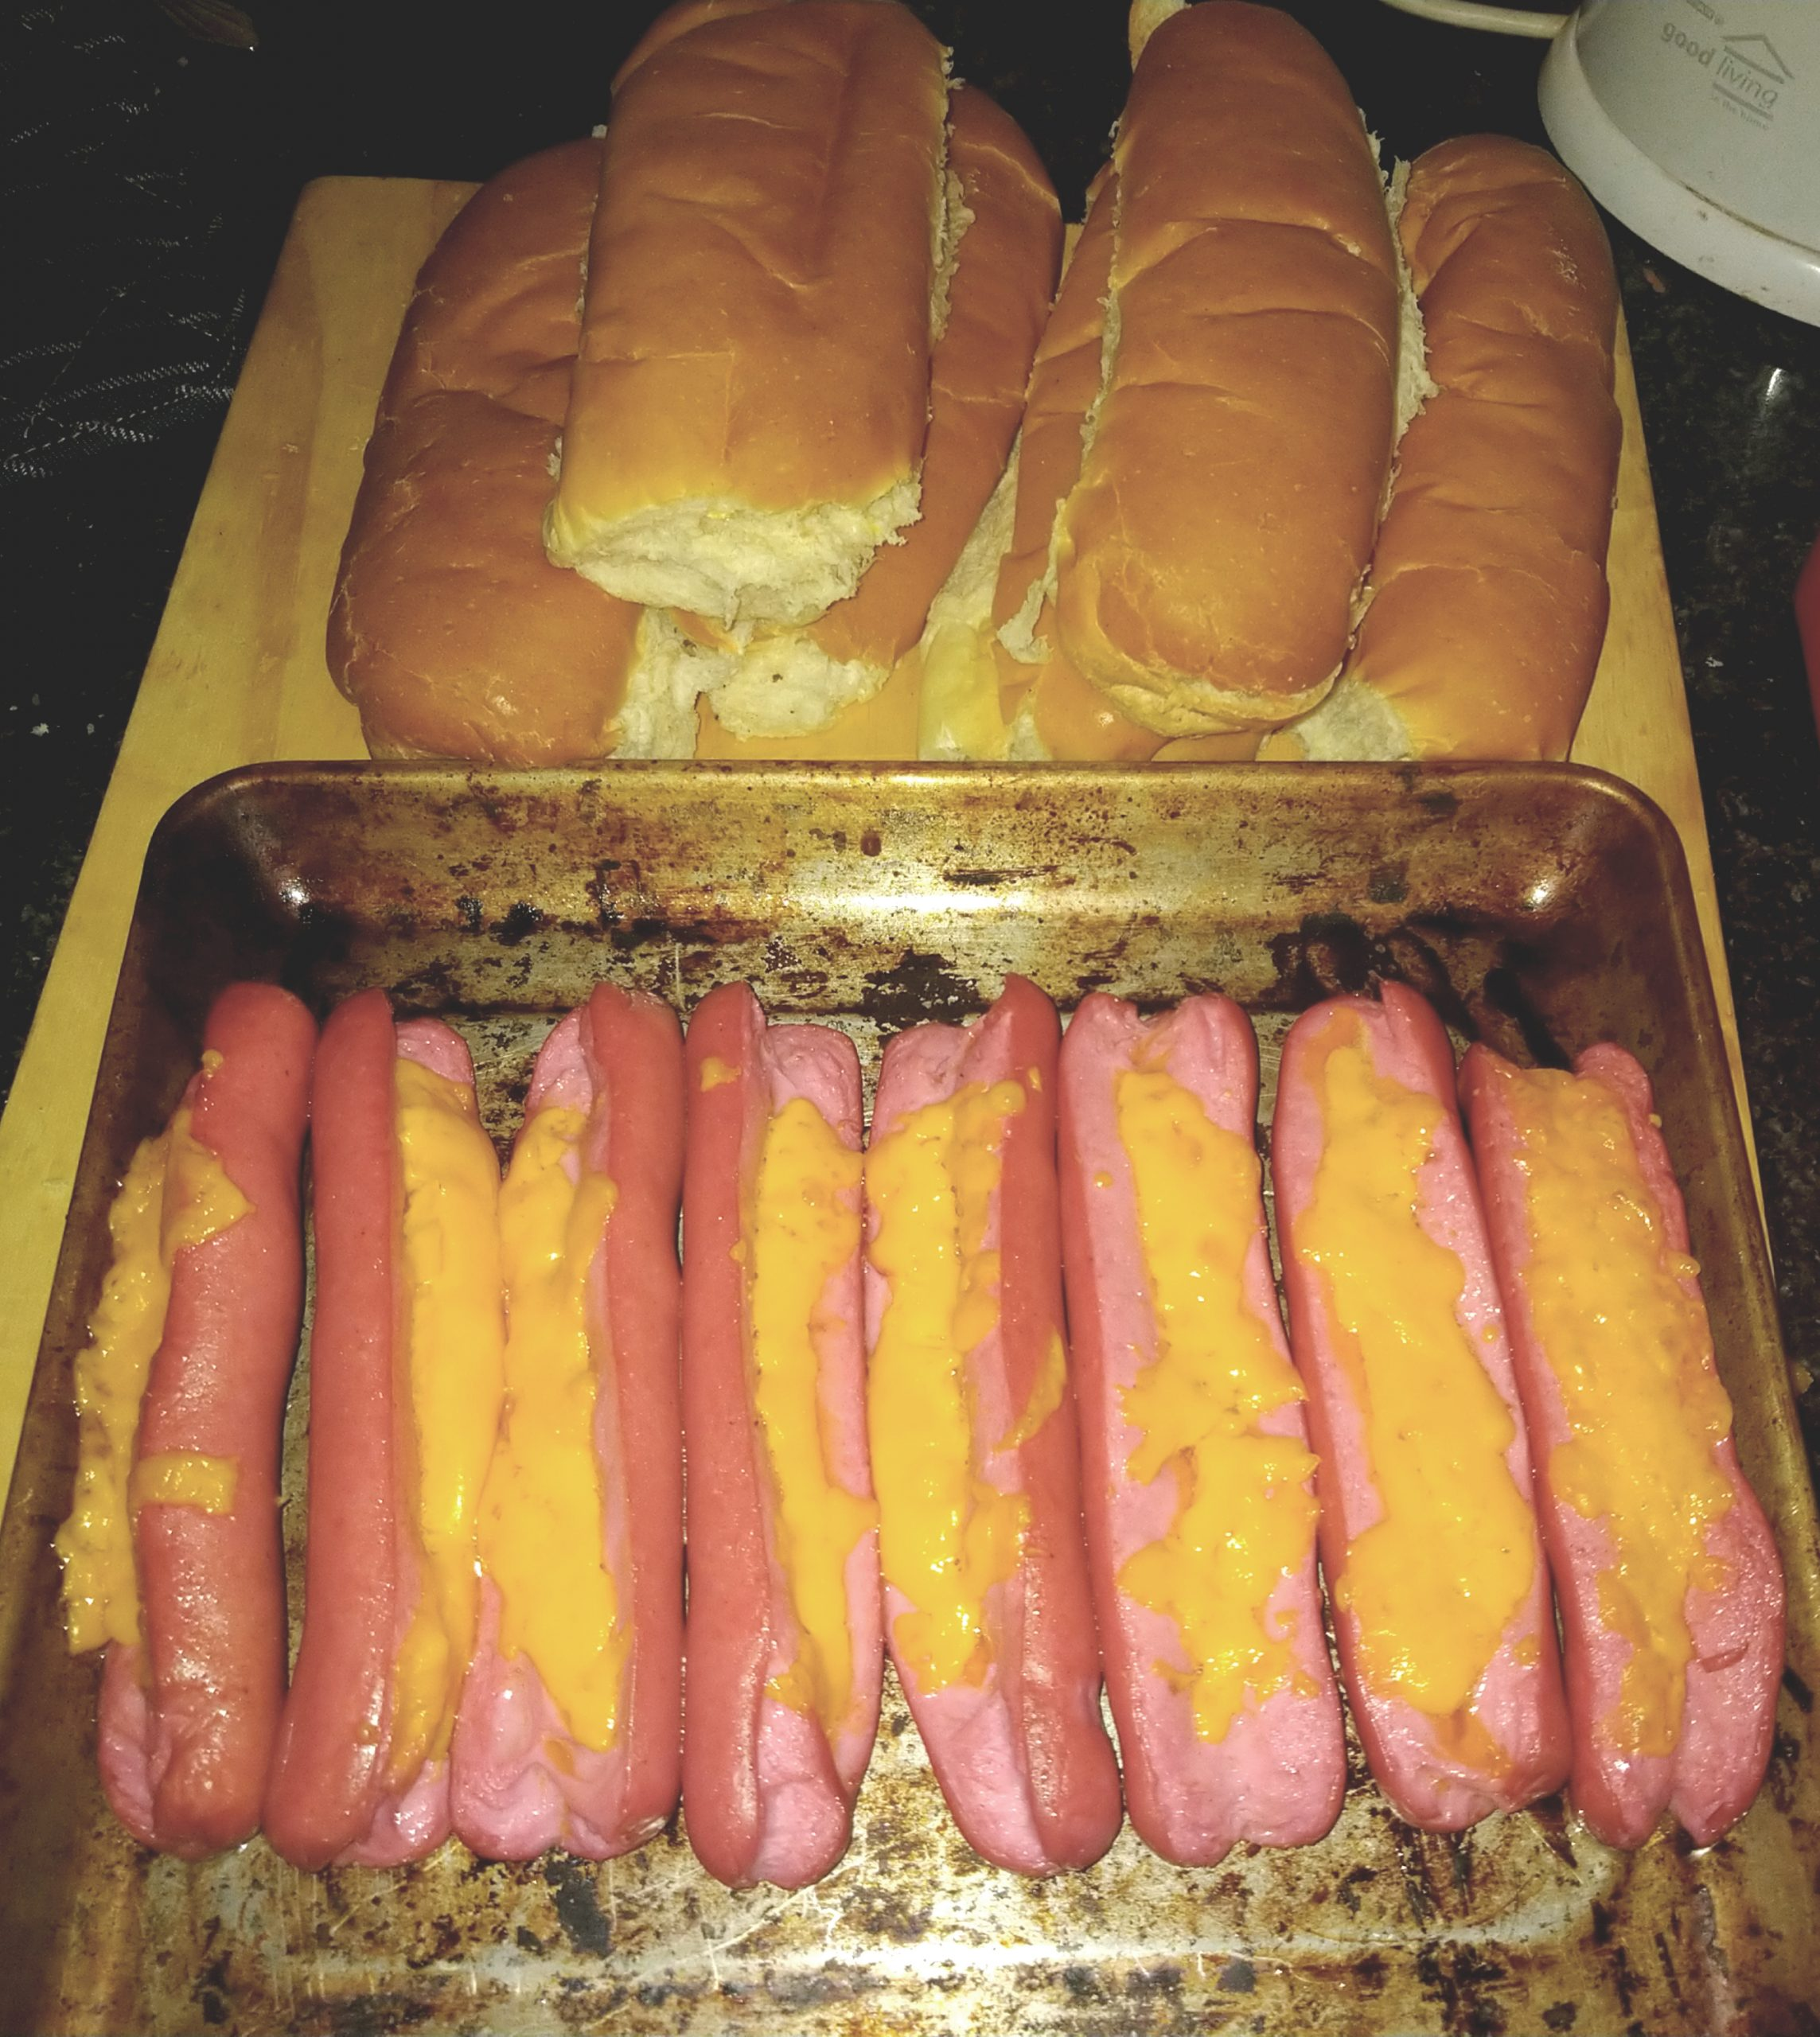 White and Buttered Hot Dog Buns and Cheesy Red Viennas on a baking tray on a wooden cutting board